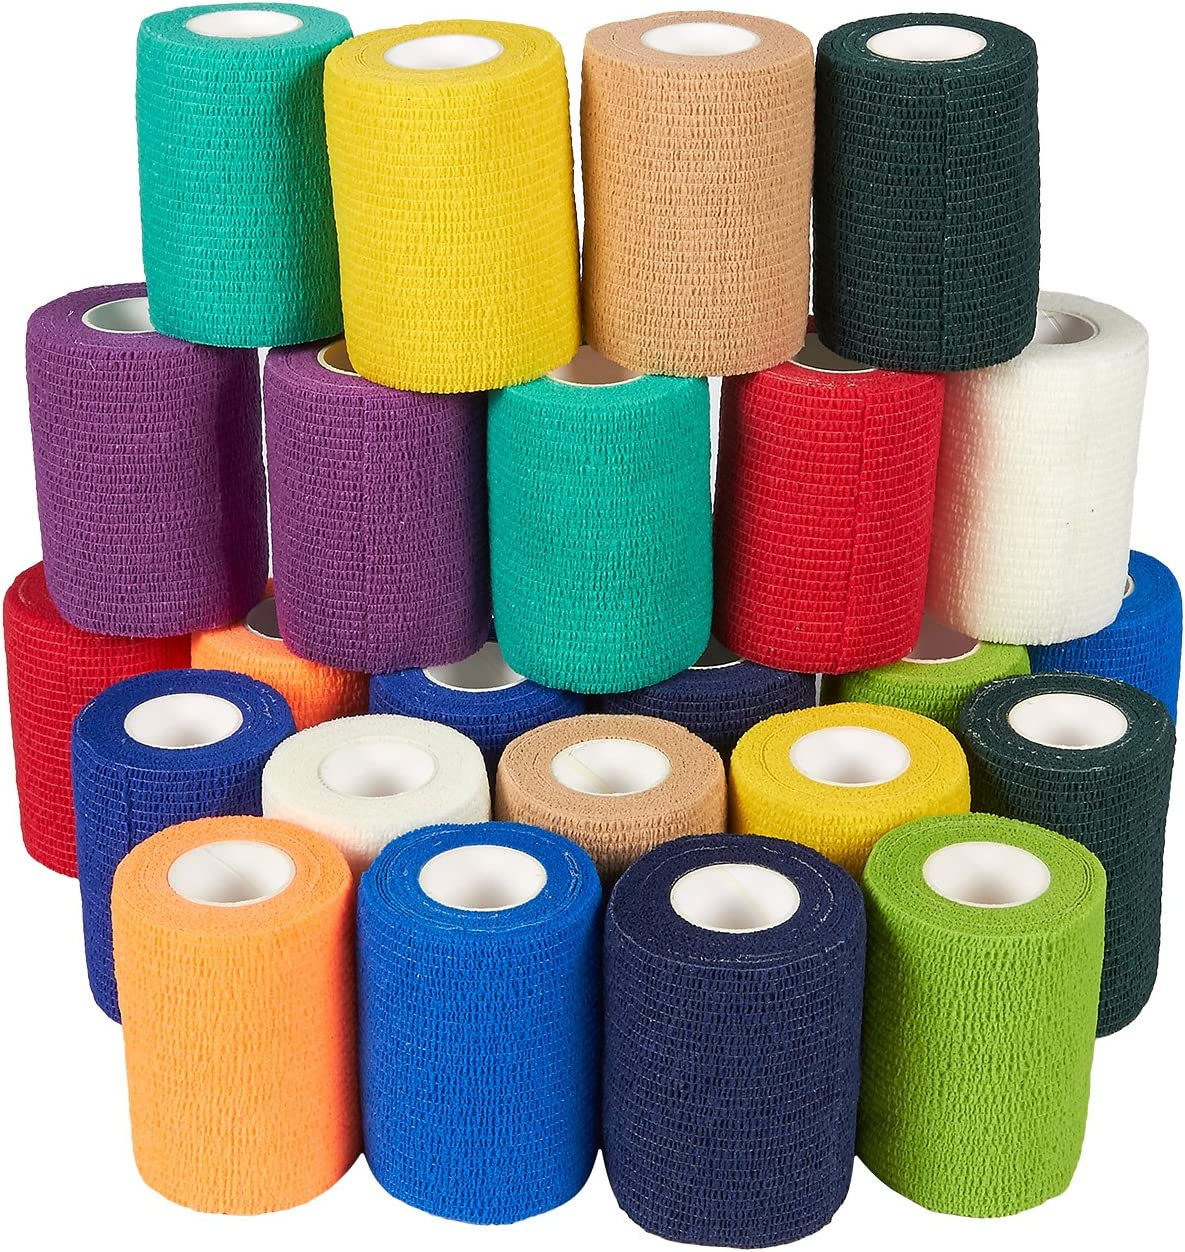 Self Adhesive Bandage Wrap, Cohesive Tape in 12 Colors (3 in x 5 Yards, 24-Pack): Health & Personal Care